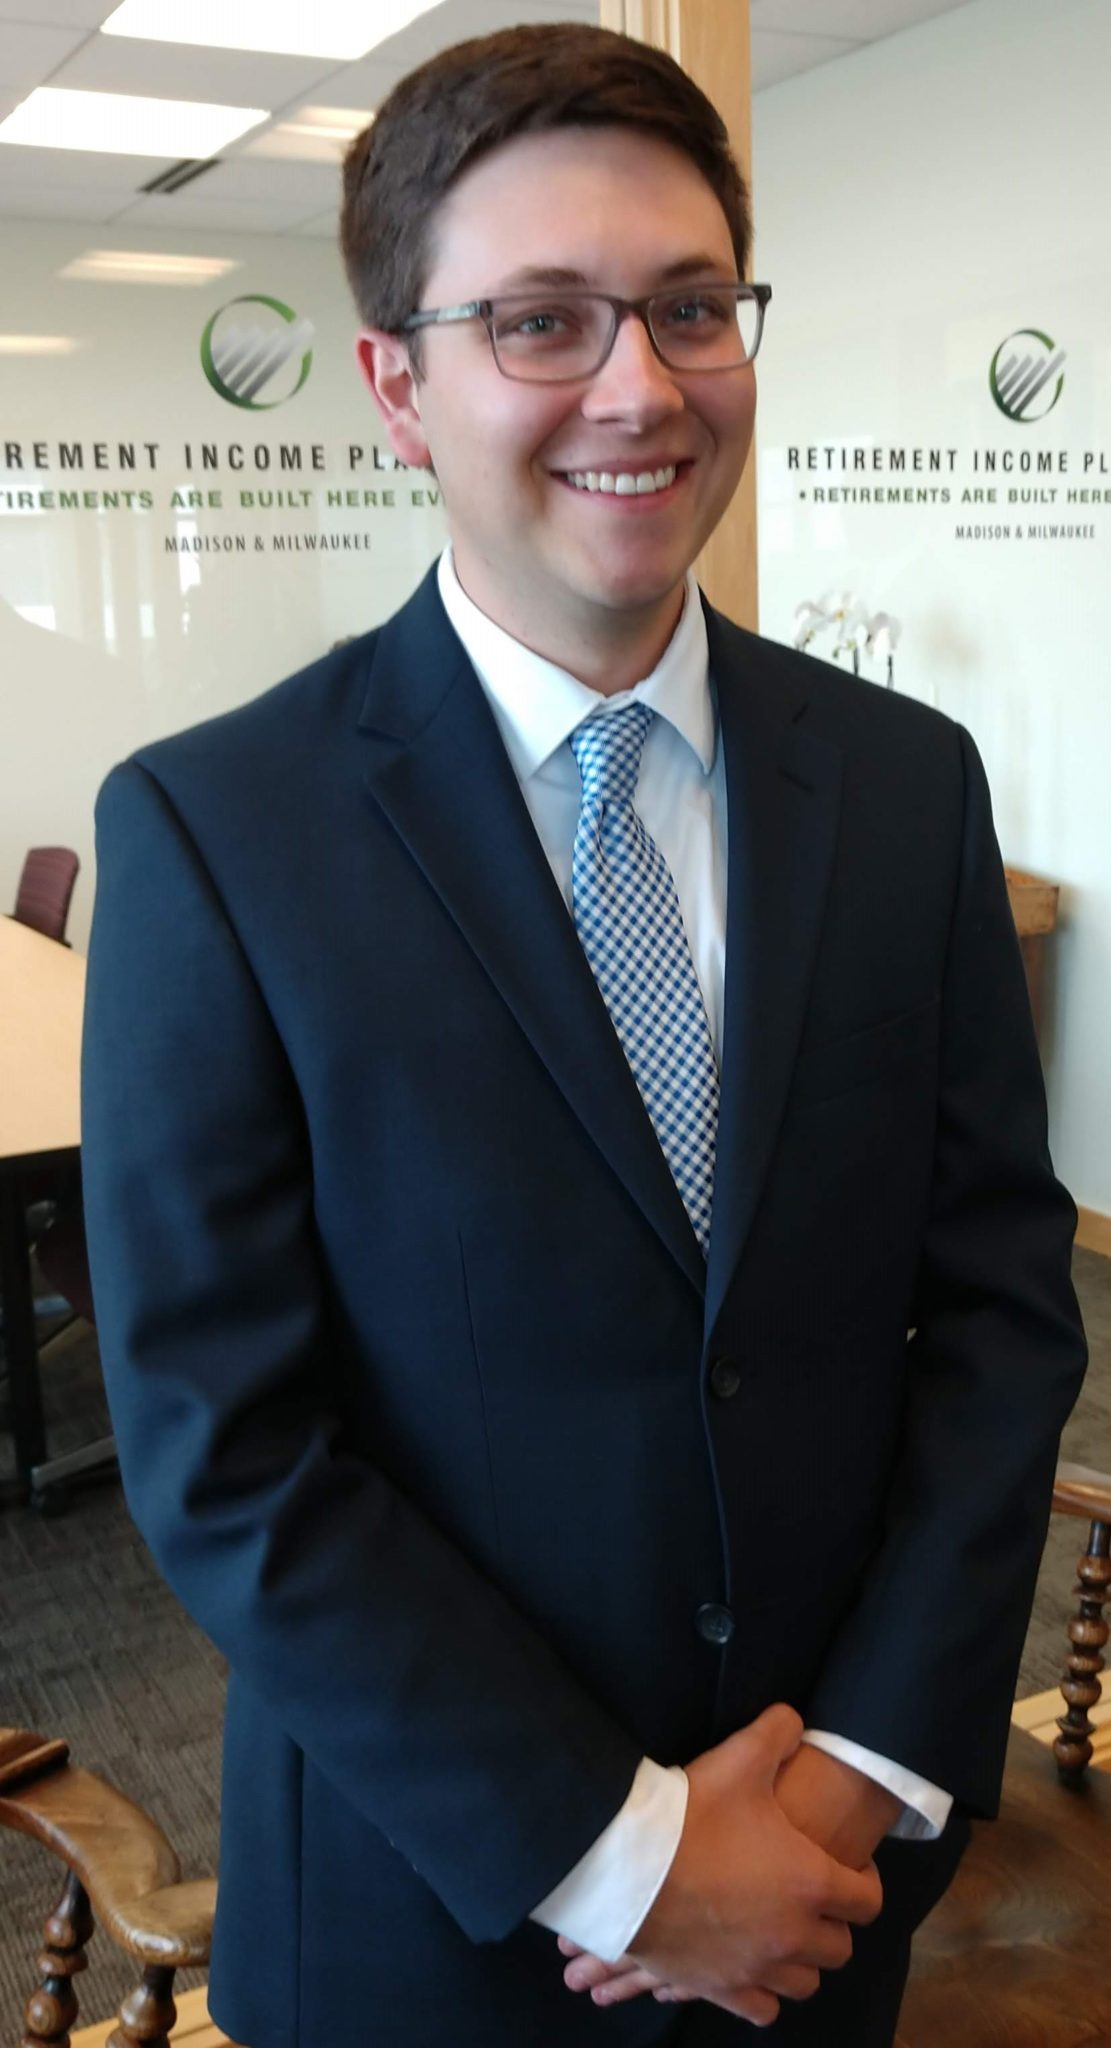 Matt McKelvey- Director of Financial Planning, Retirement Income Planning llc